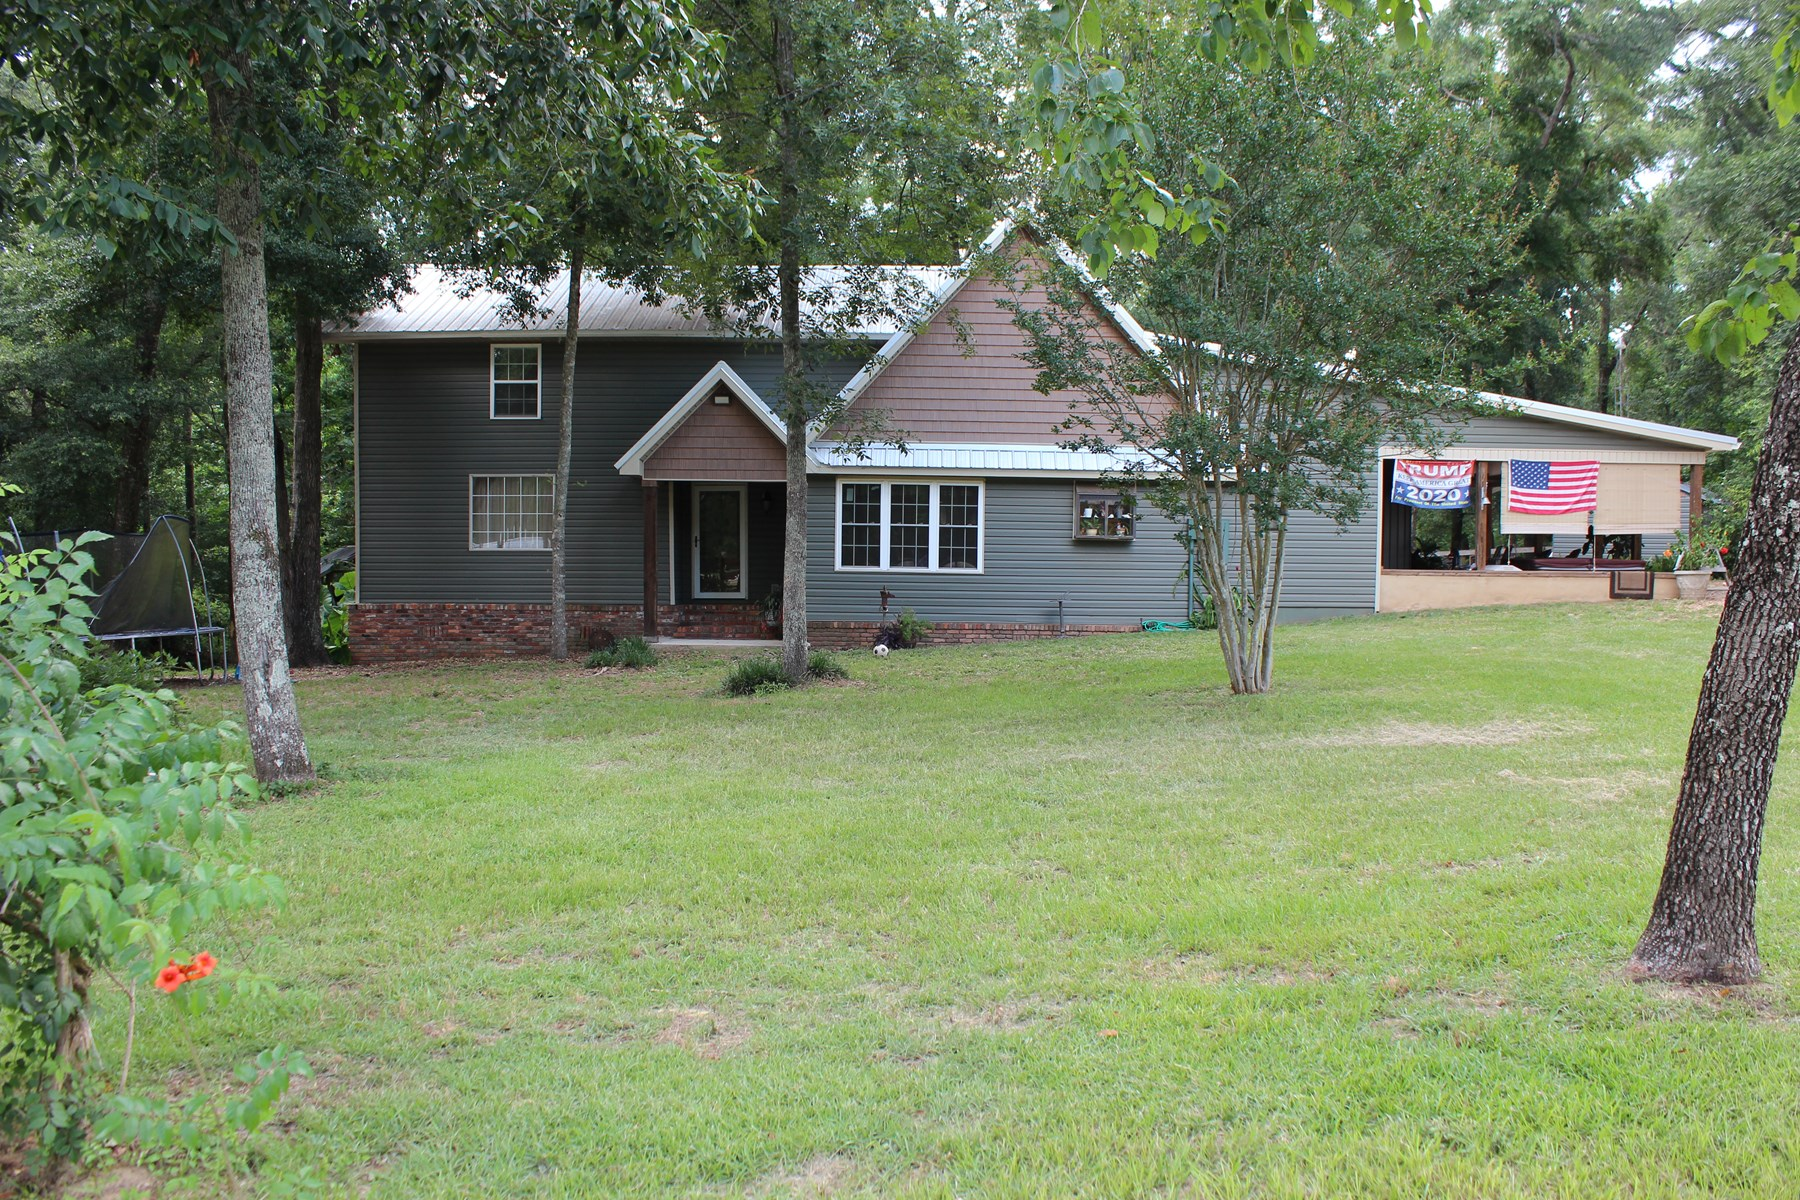 Country Home and Land For Sale in Henry Co. Al